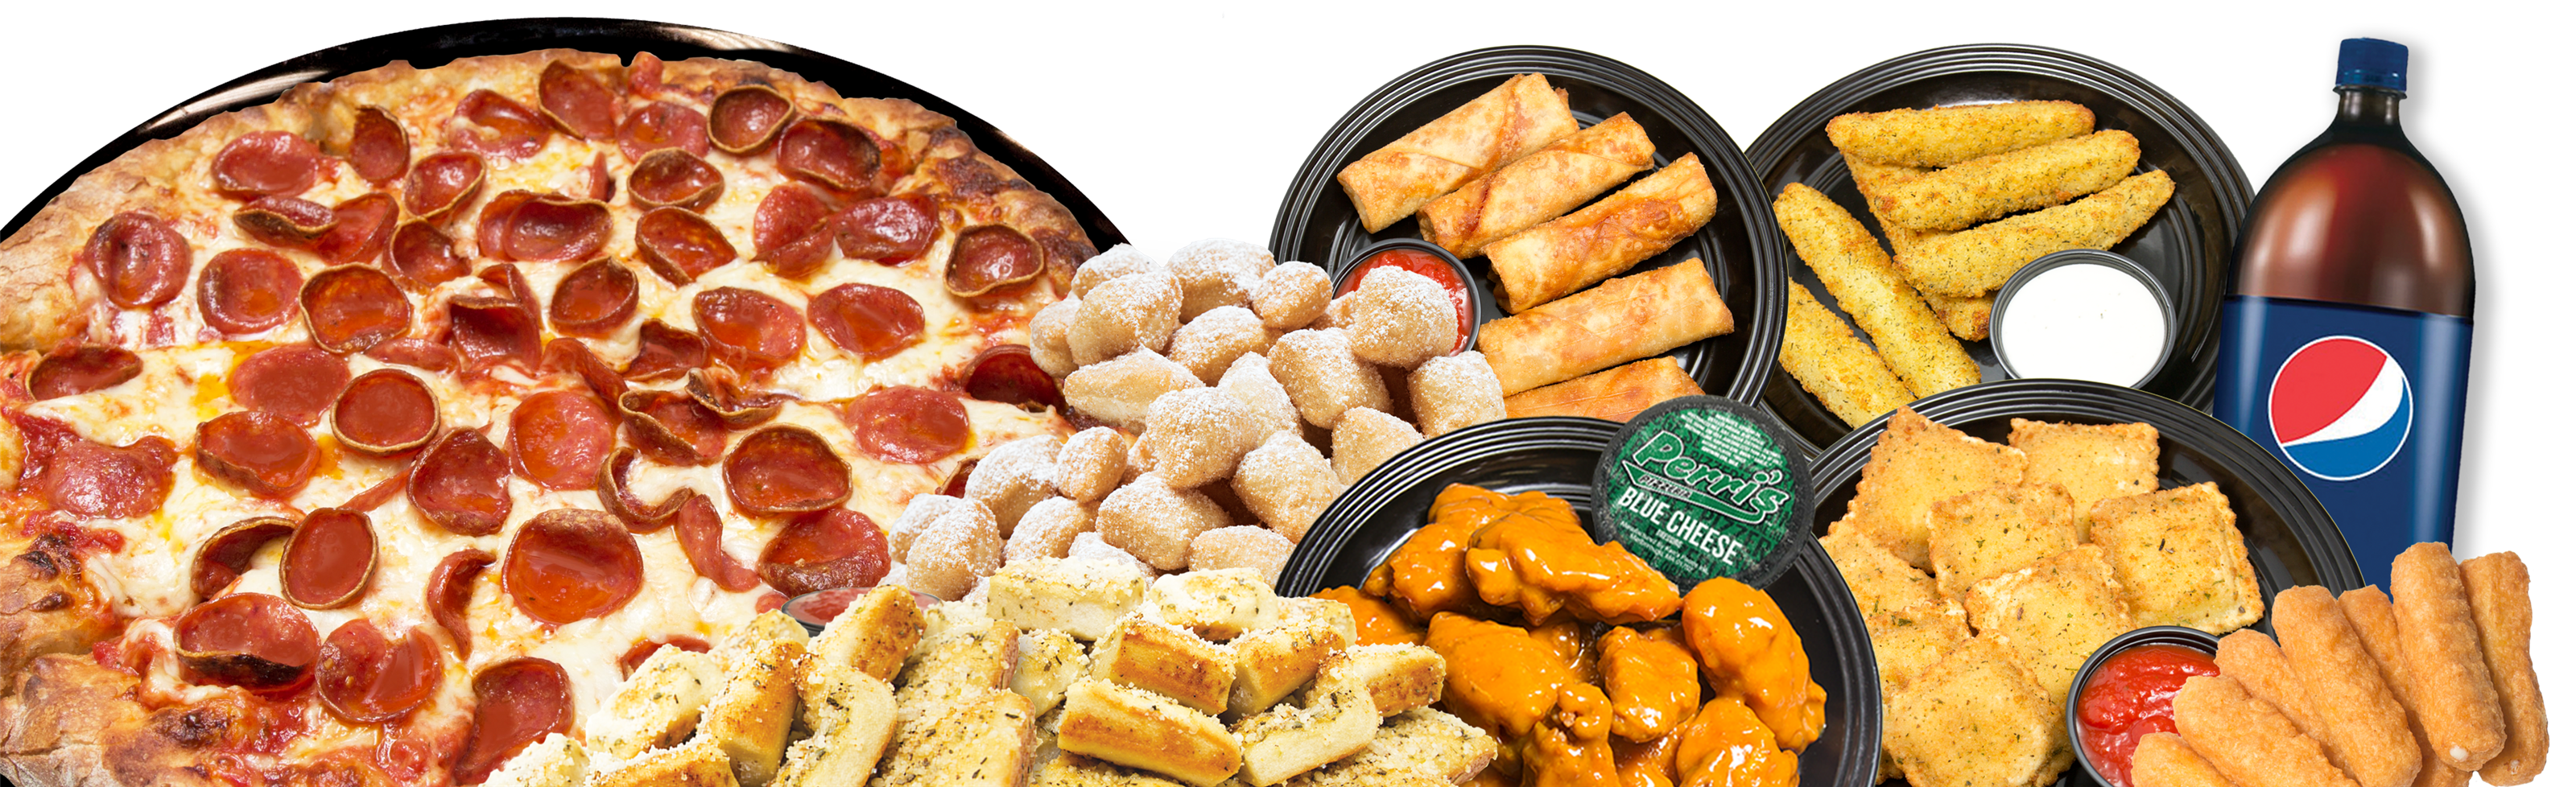 Pizza Wings Pizza Logs Fried Dough